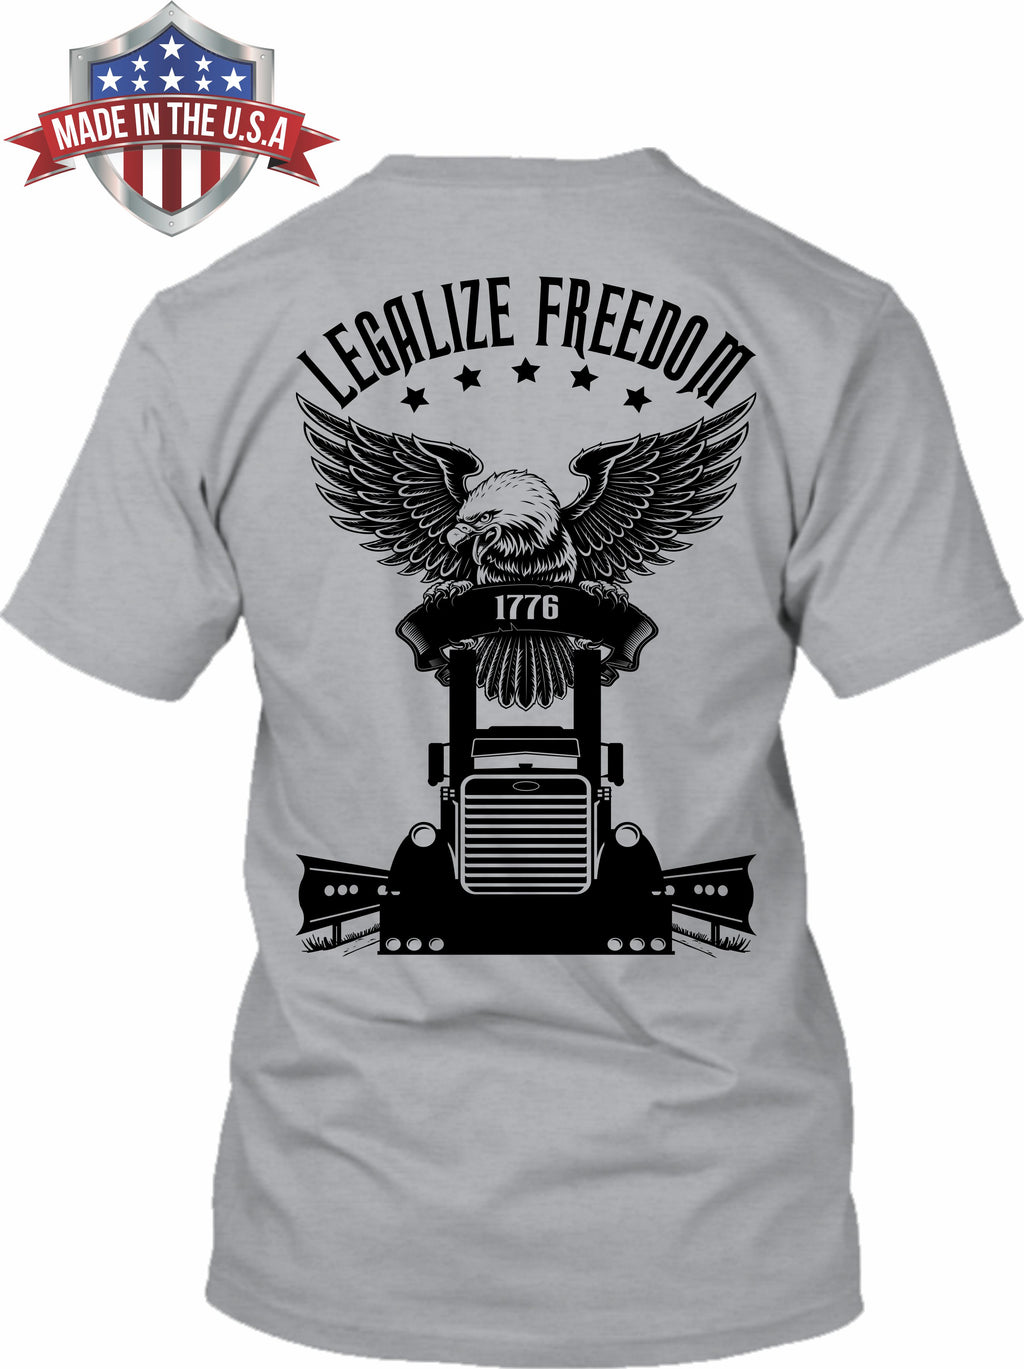 Legalize Freedom 1776 Pete - Made in the USA